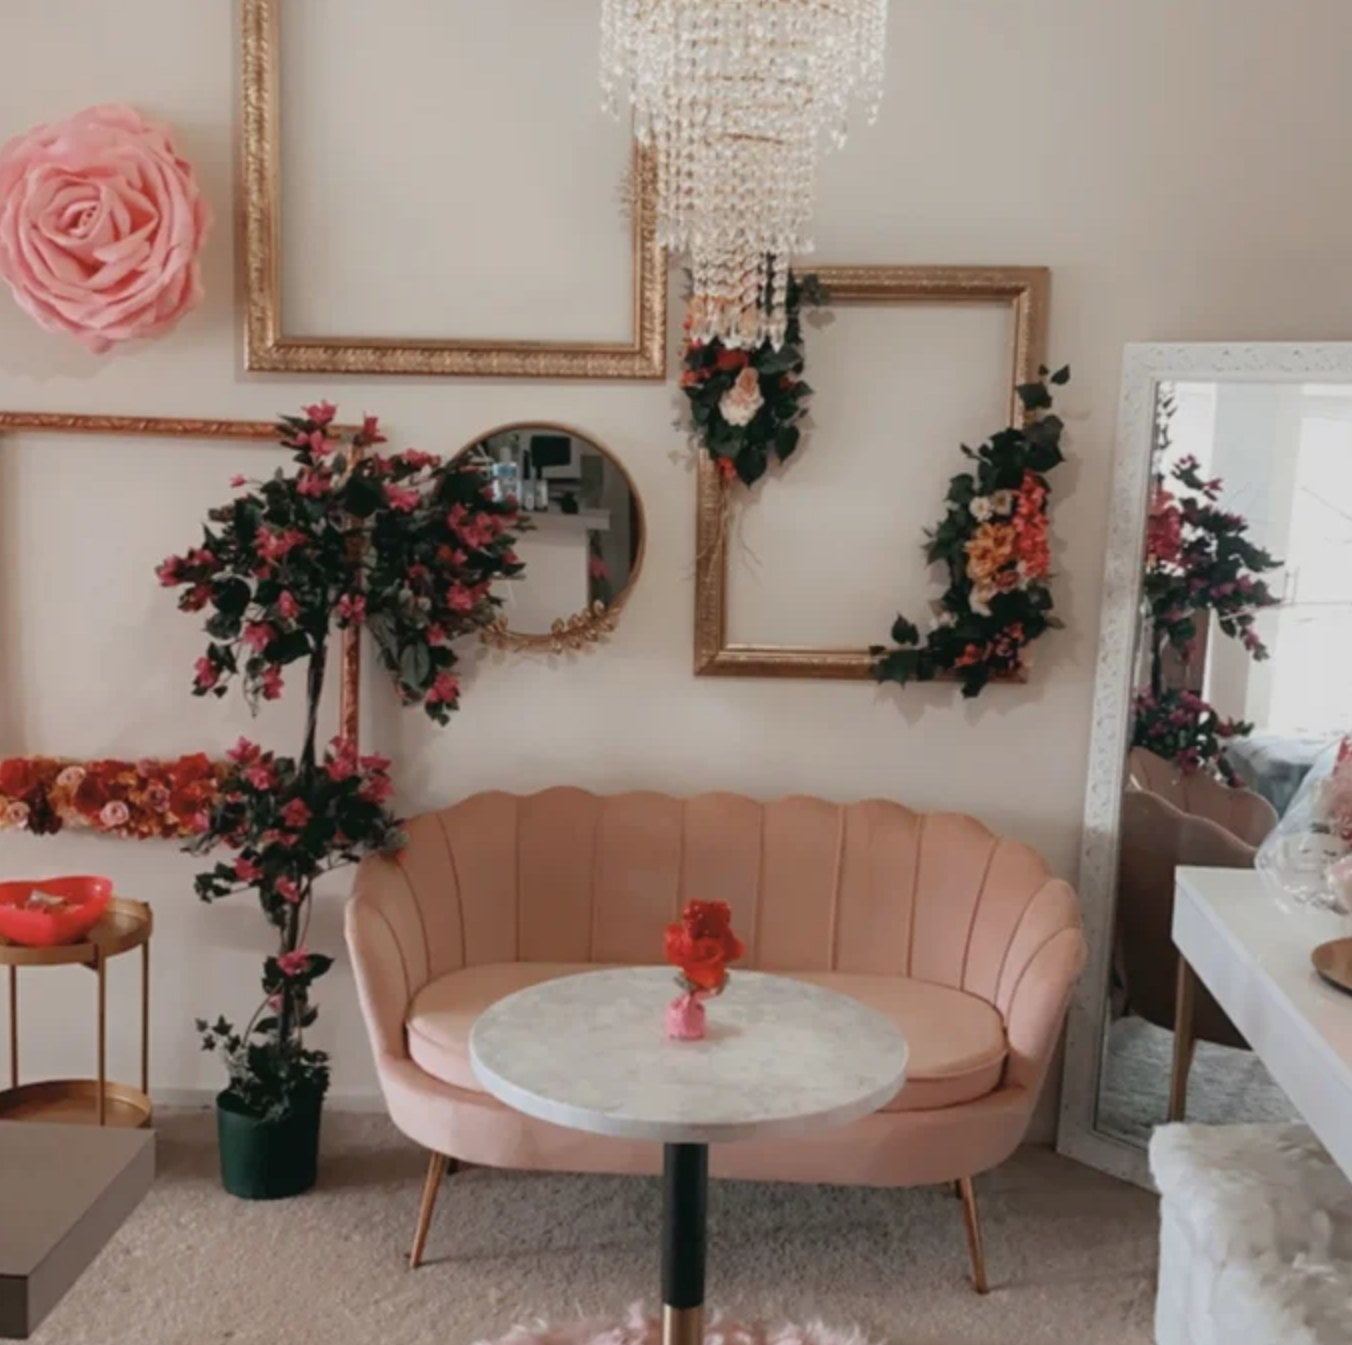 The loveseat in pink